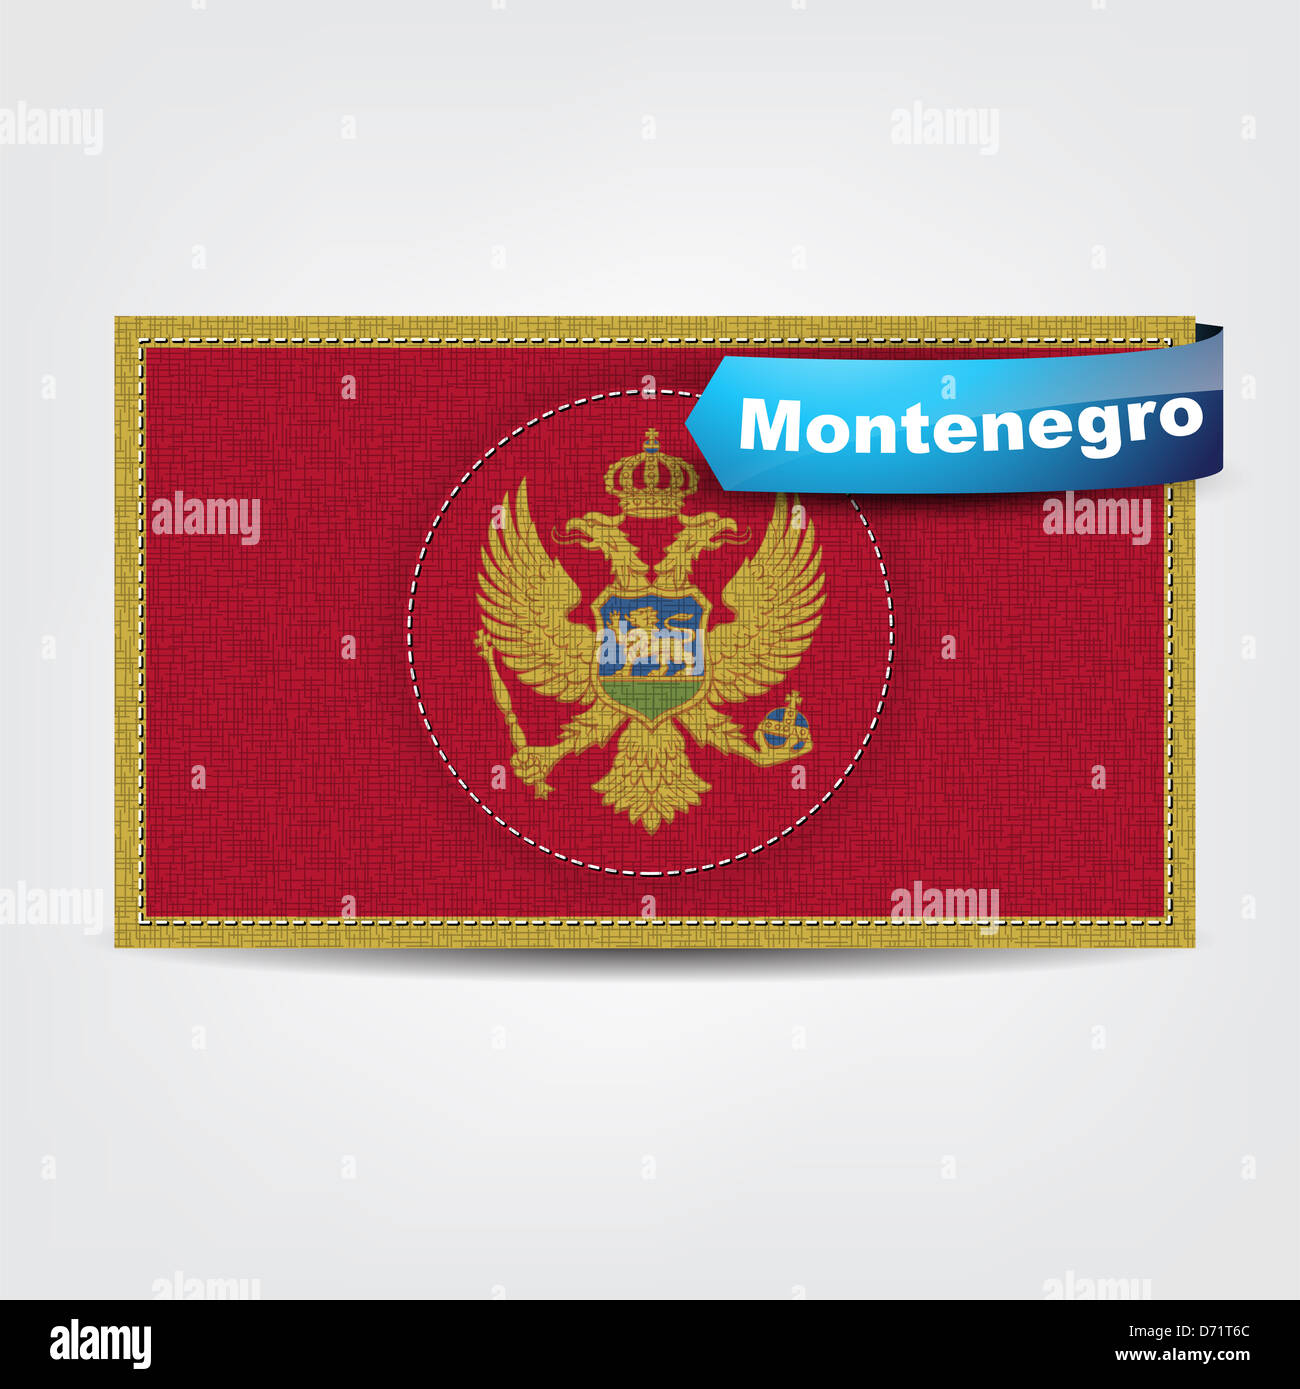 Fabric texture of the flag of Montenegro with a blue bow. Stock Photo